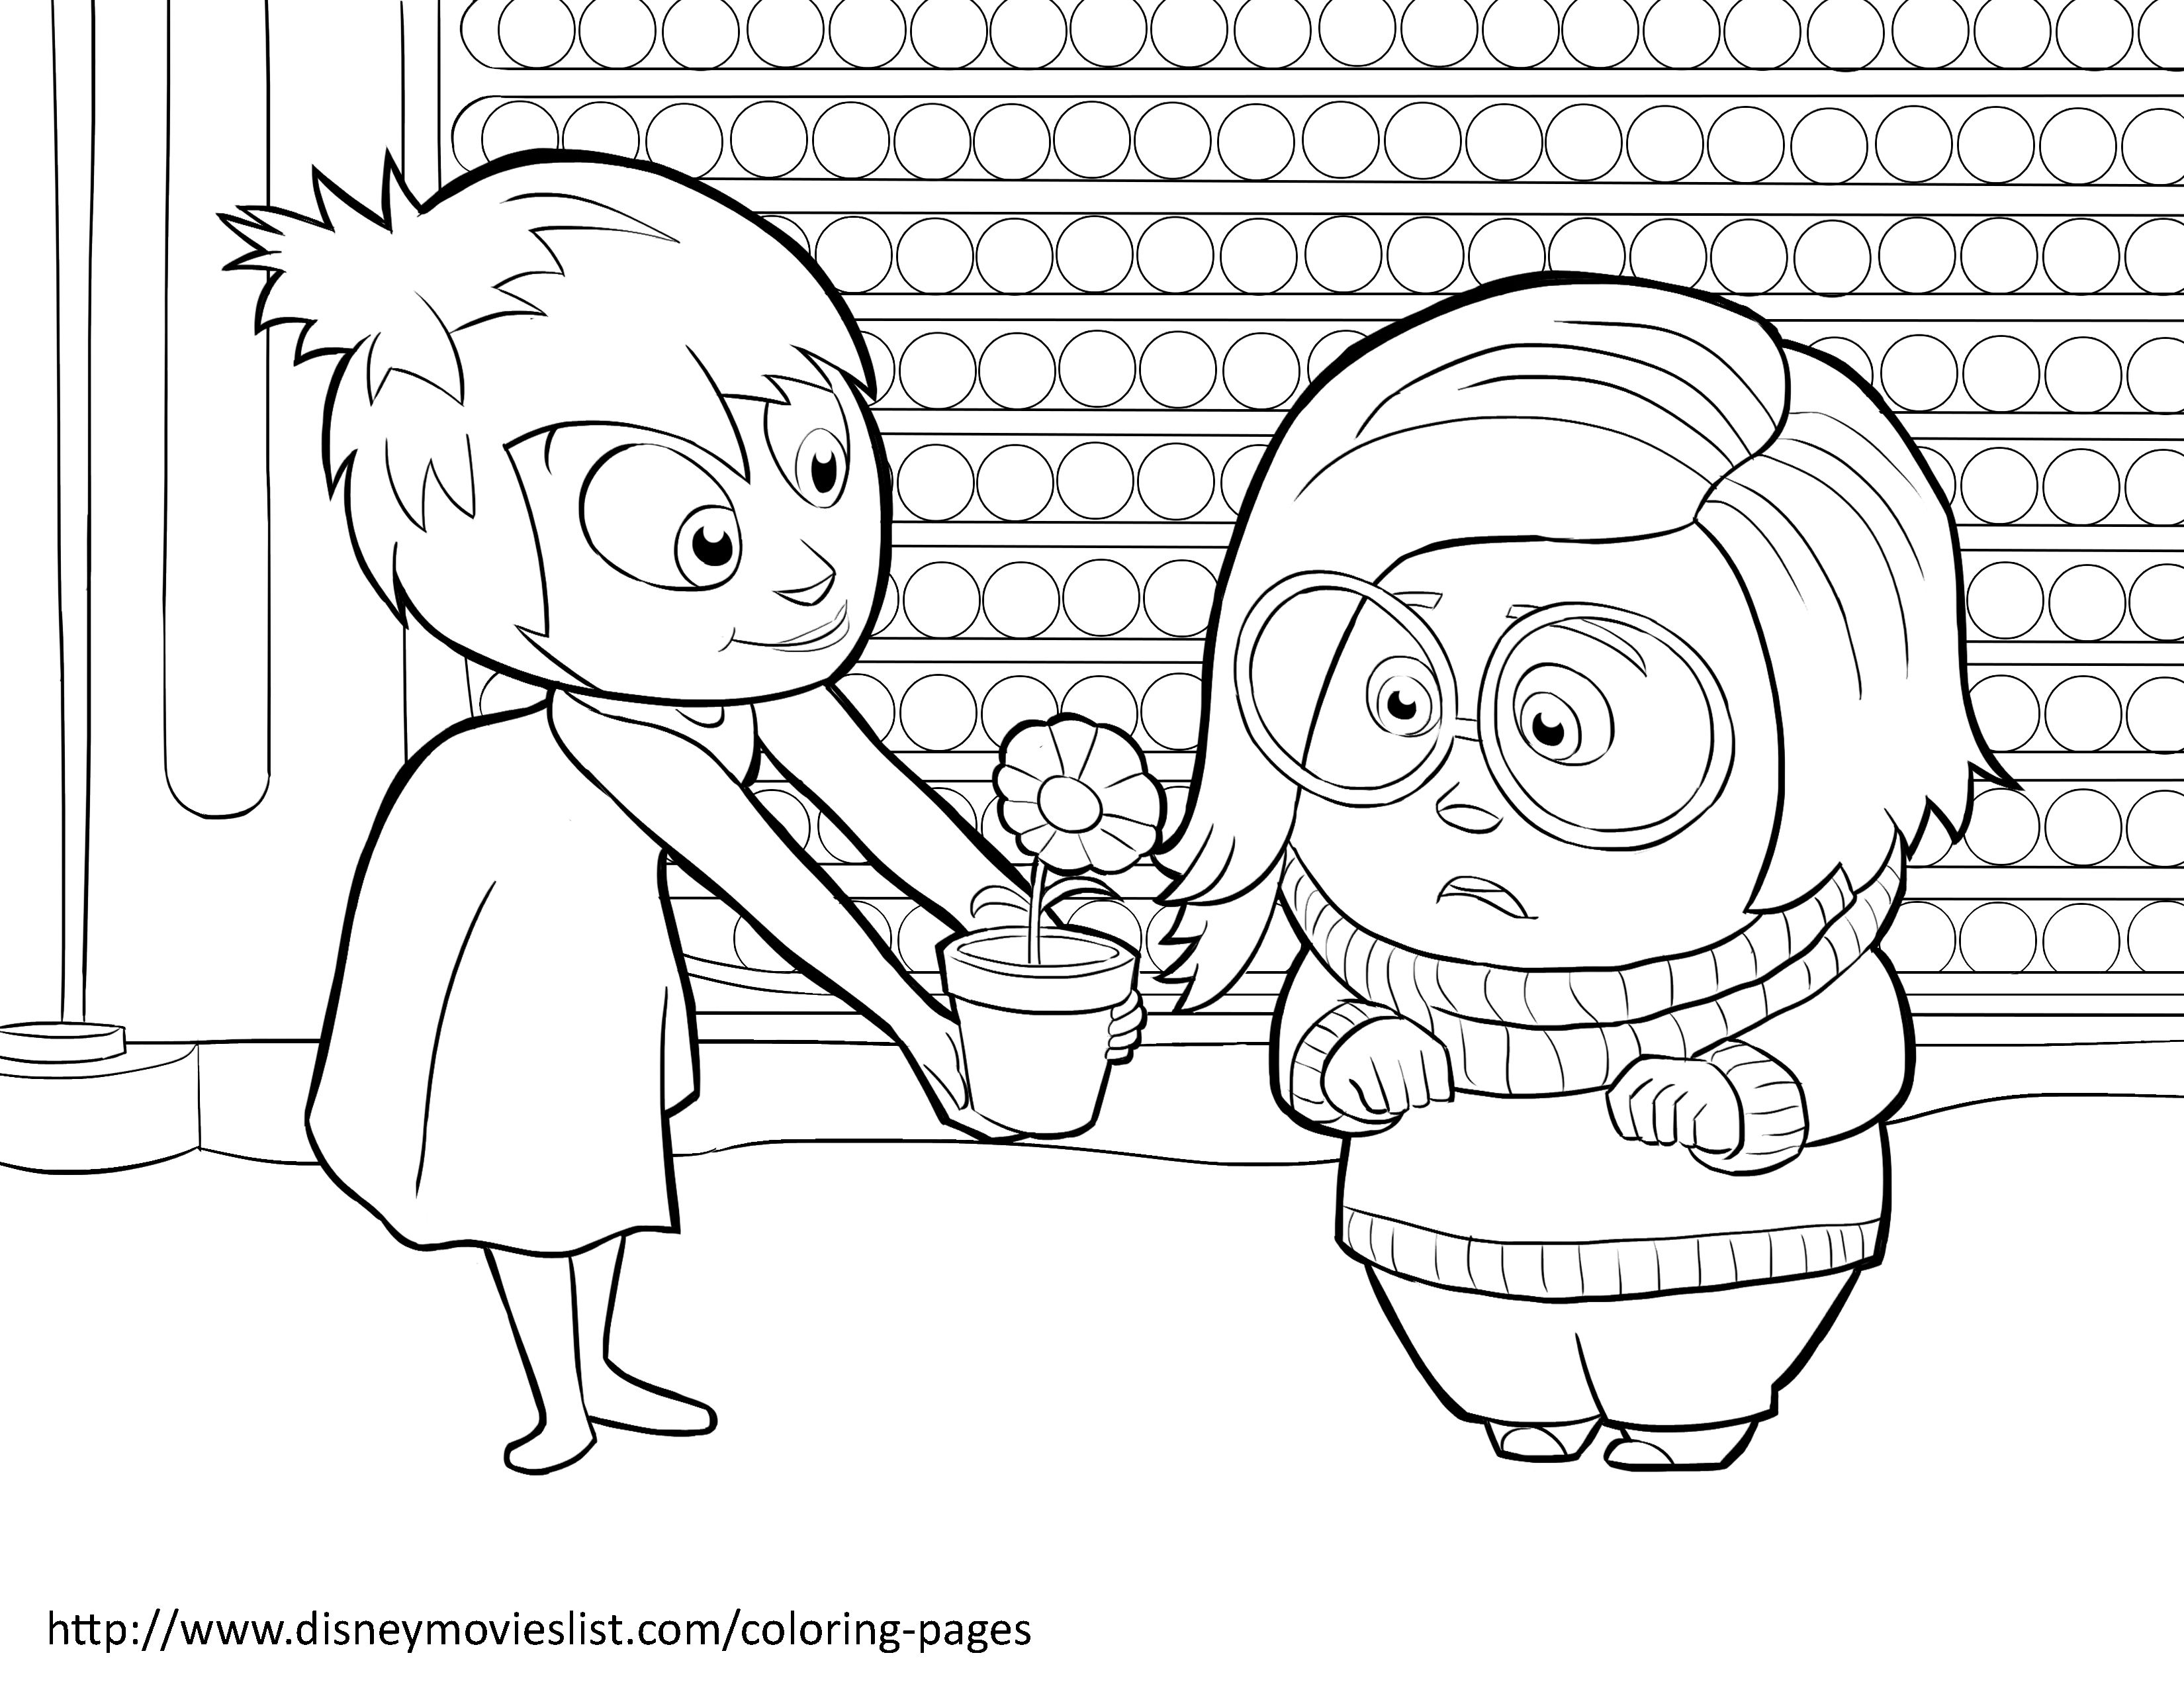 Disney\'s Inside Out Coloring Pages Sheet, Free Disney Printable ...